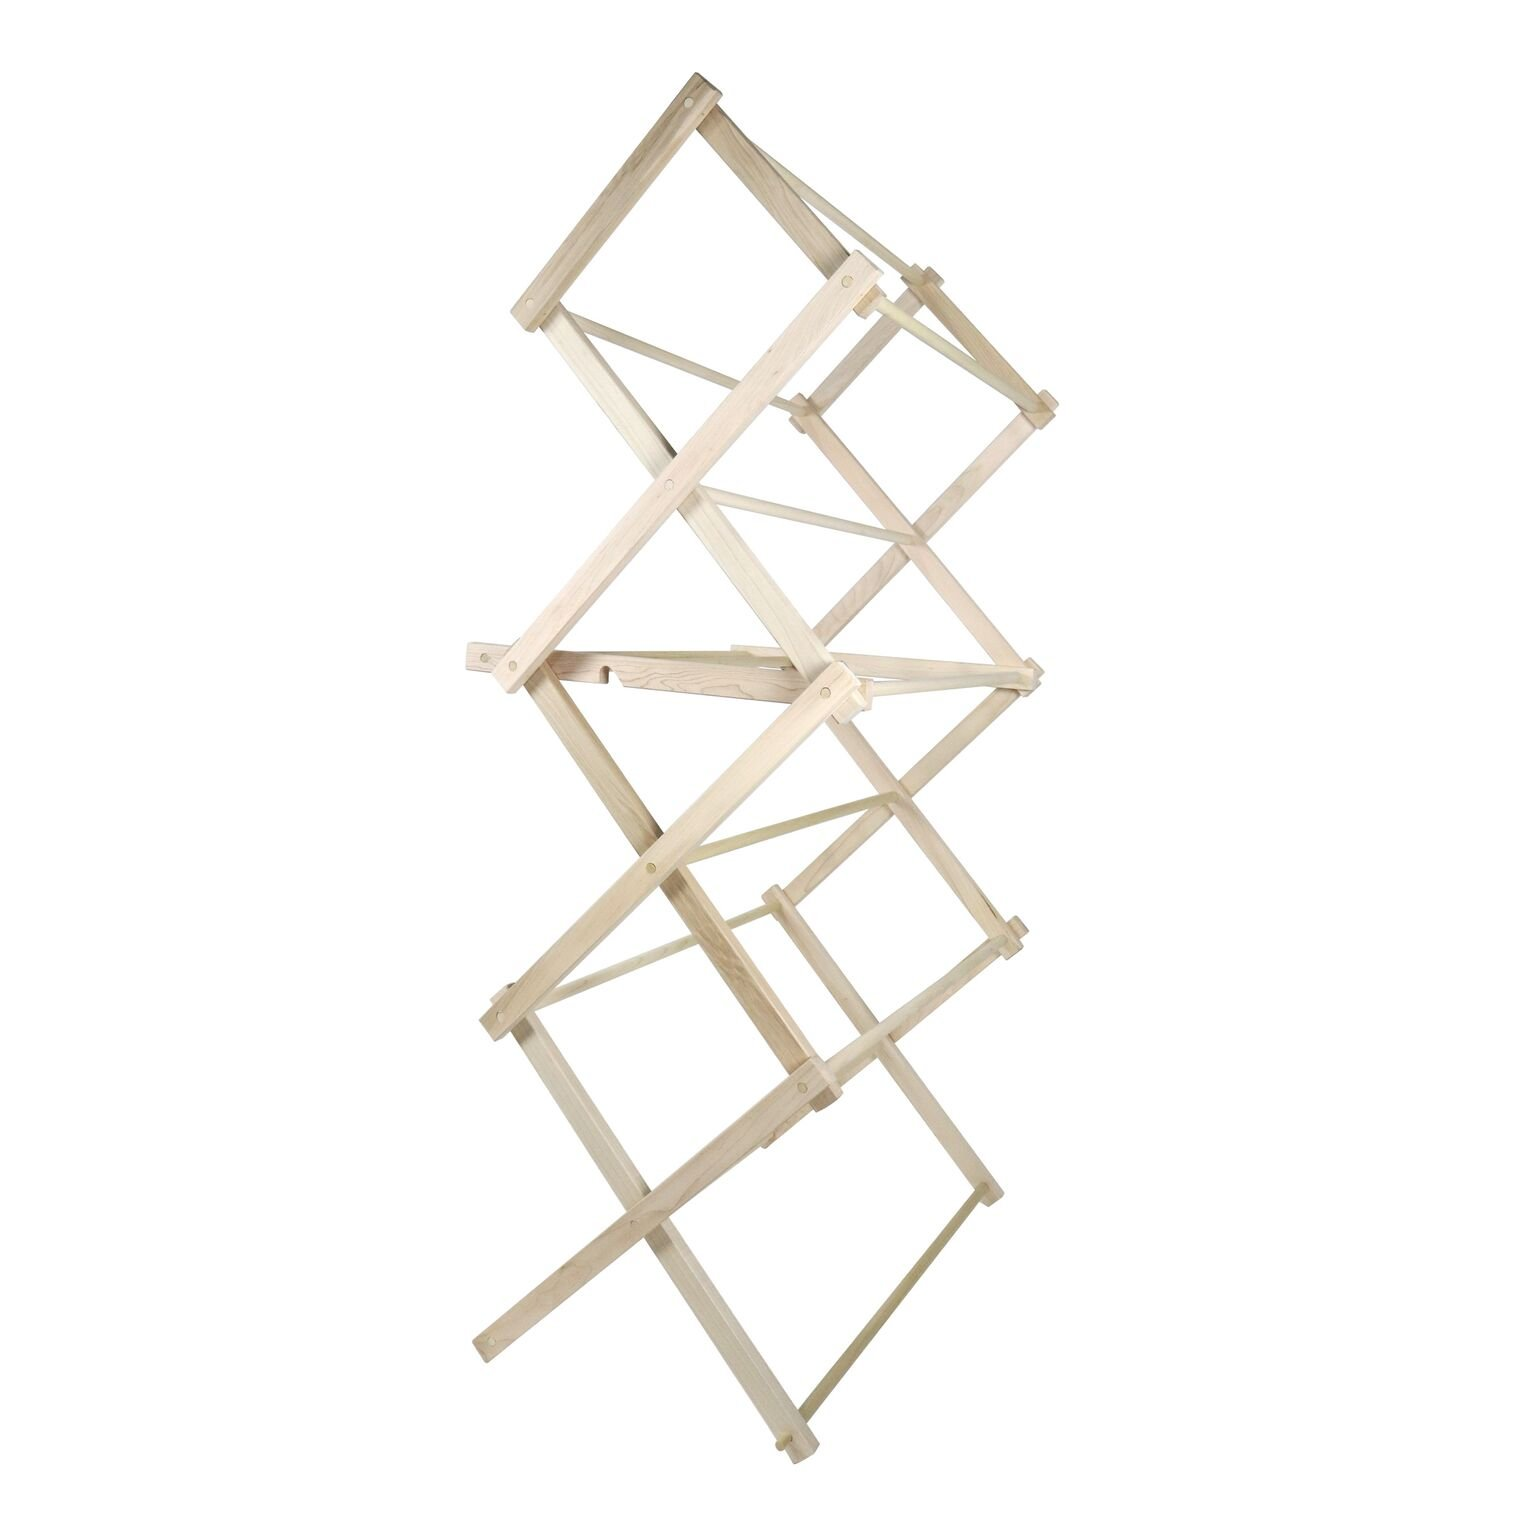 """LifeSong Milestones American Made Clothes Drying Rack Collapsible Folding Two Height Wooden Quilt Rack 36'' x 28'' x 7.5"""" 100% hardwood Made in the USA (36'') by LifeSong Milestones (Image #5)"""